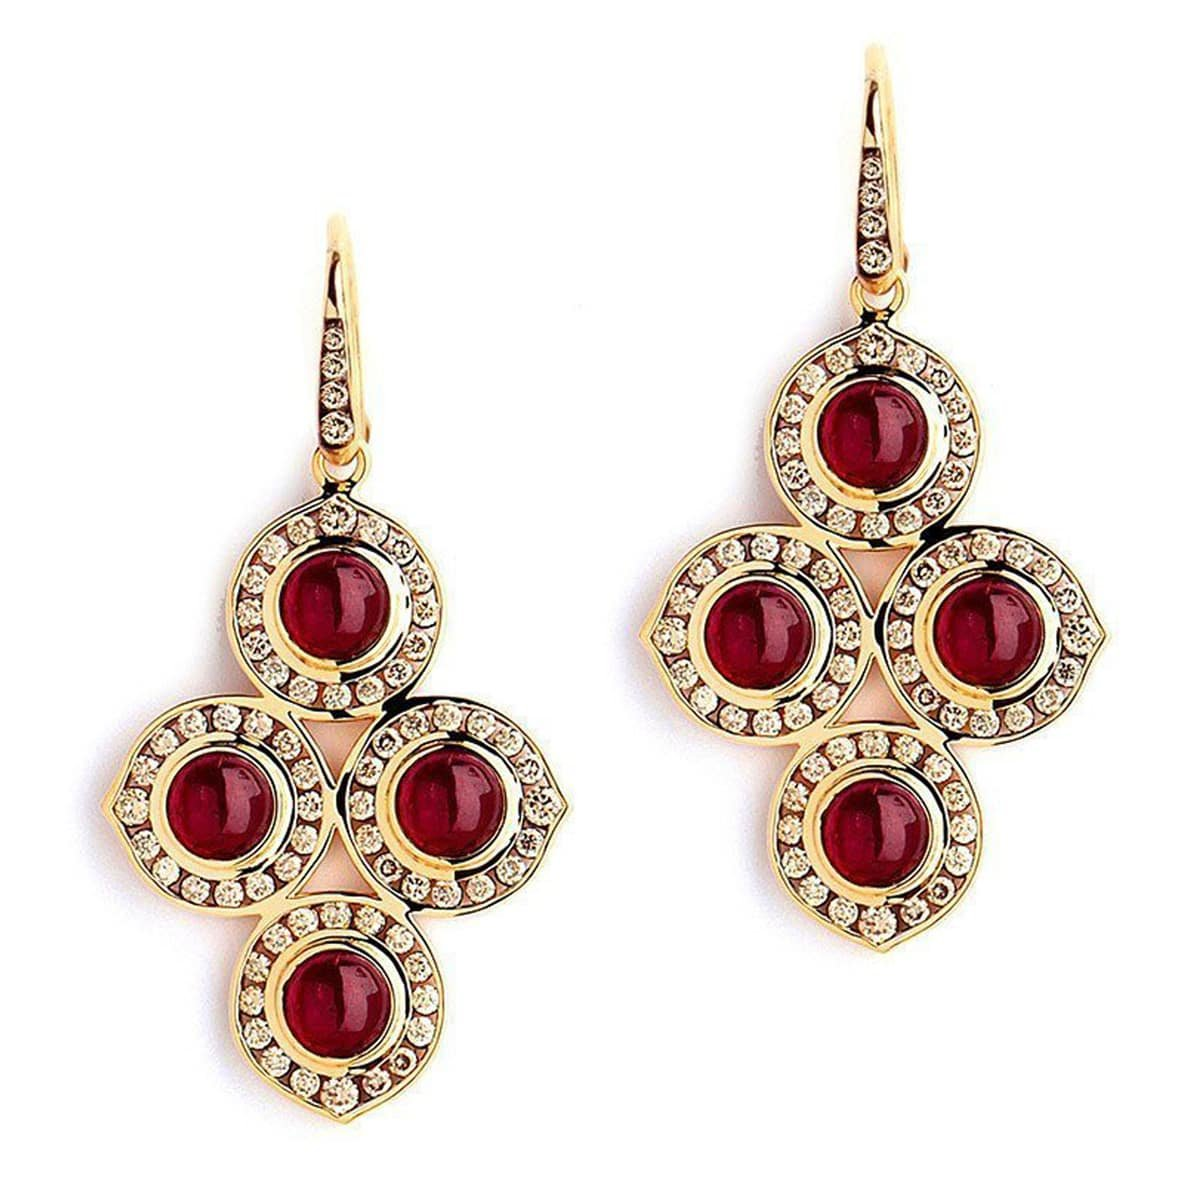 18kt Ruby & Champagne Diamond Earrings, Syna